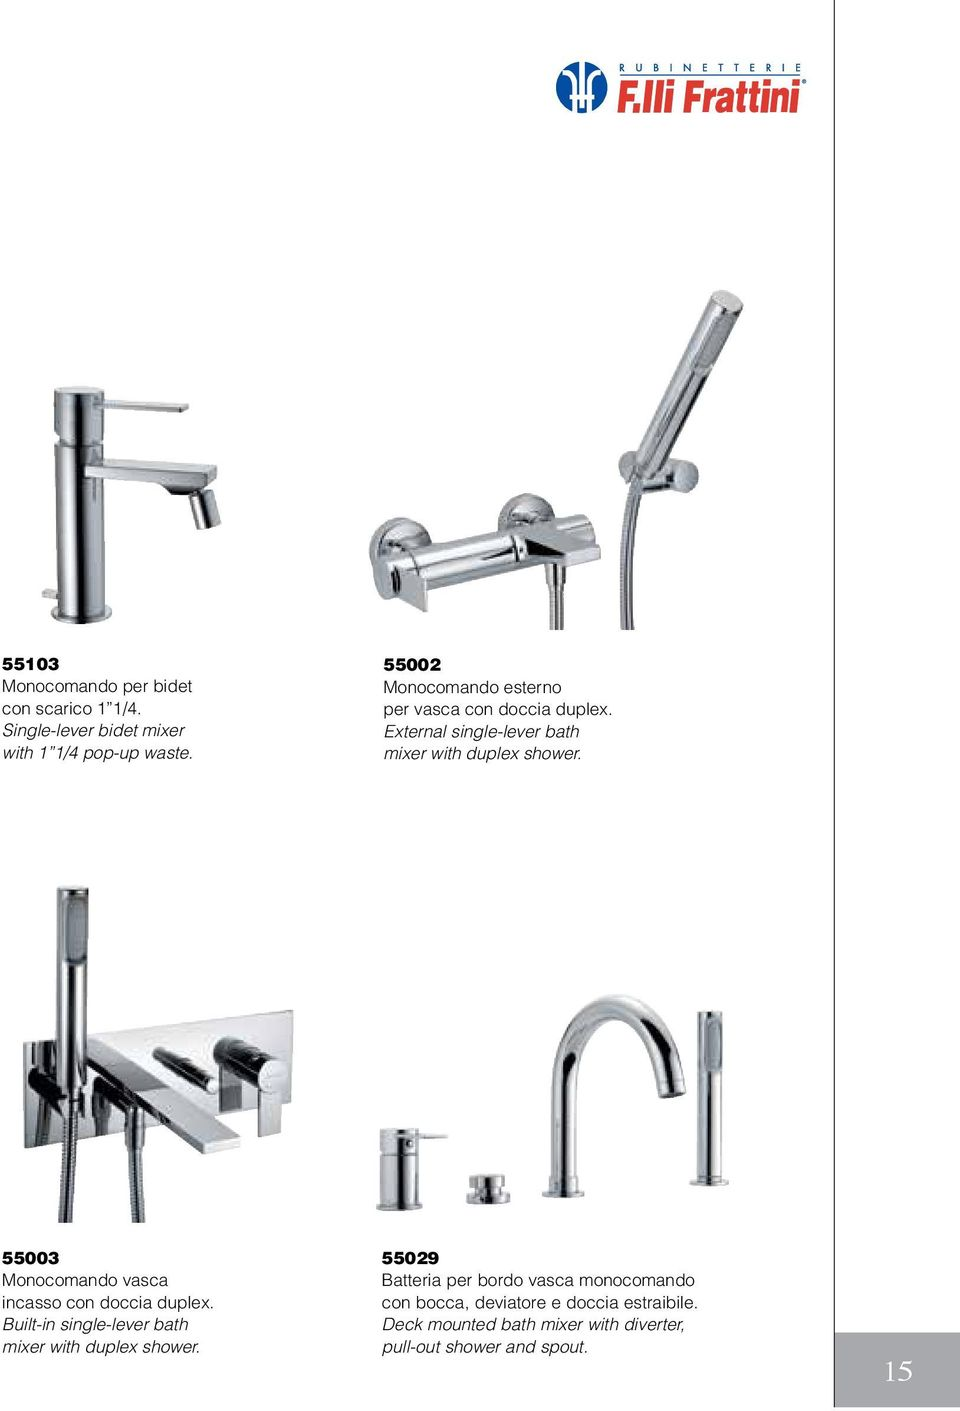 55003 Monocomando vasca incasso con doccia duplex. Built-in single-lever bath mixer with duplex shower.